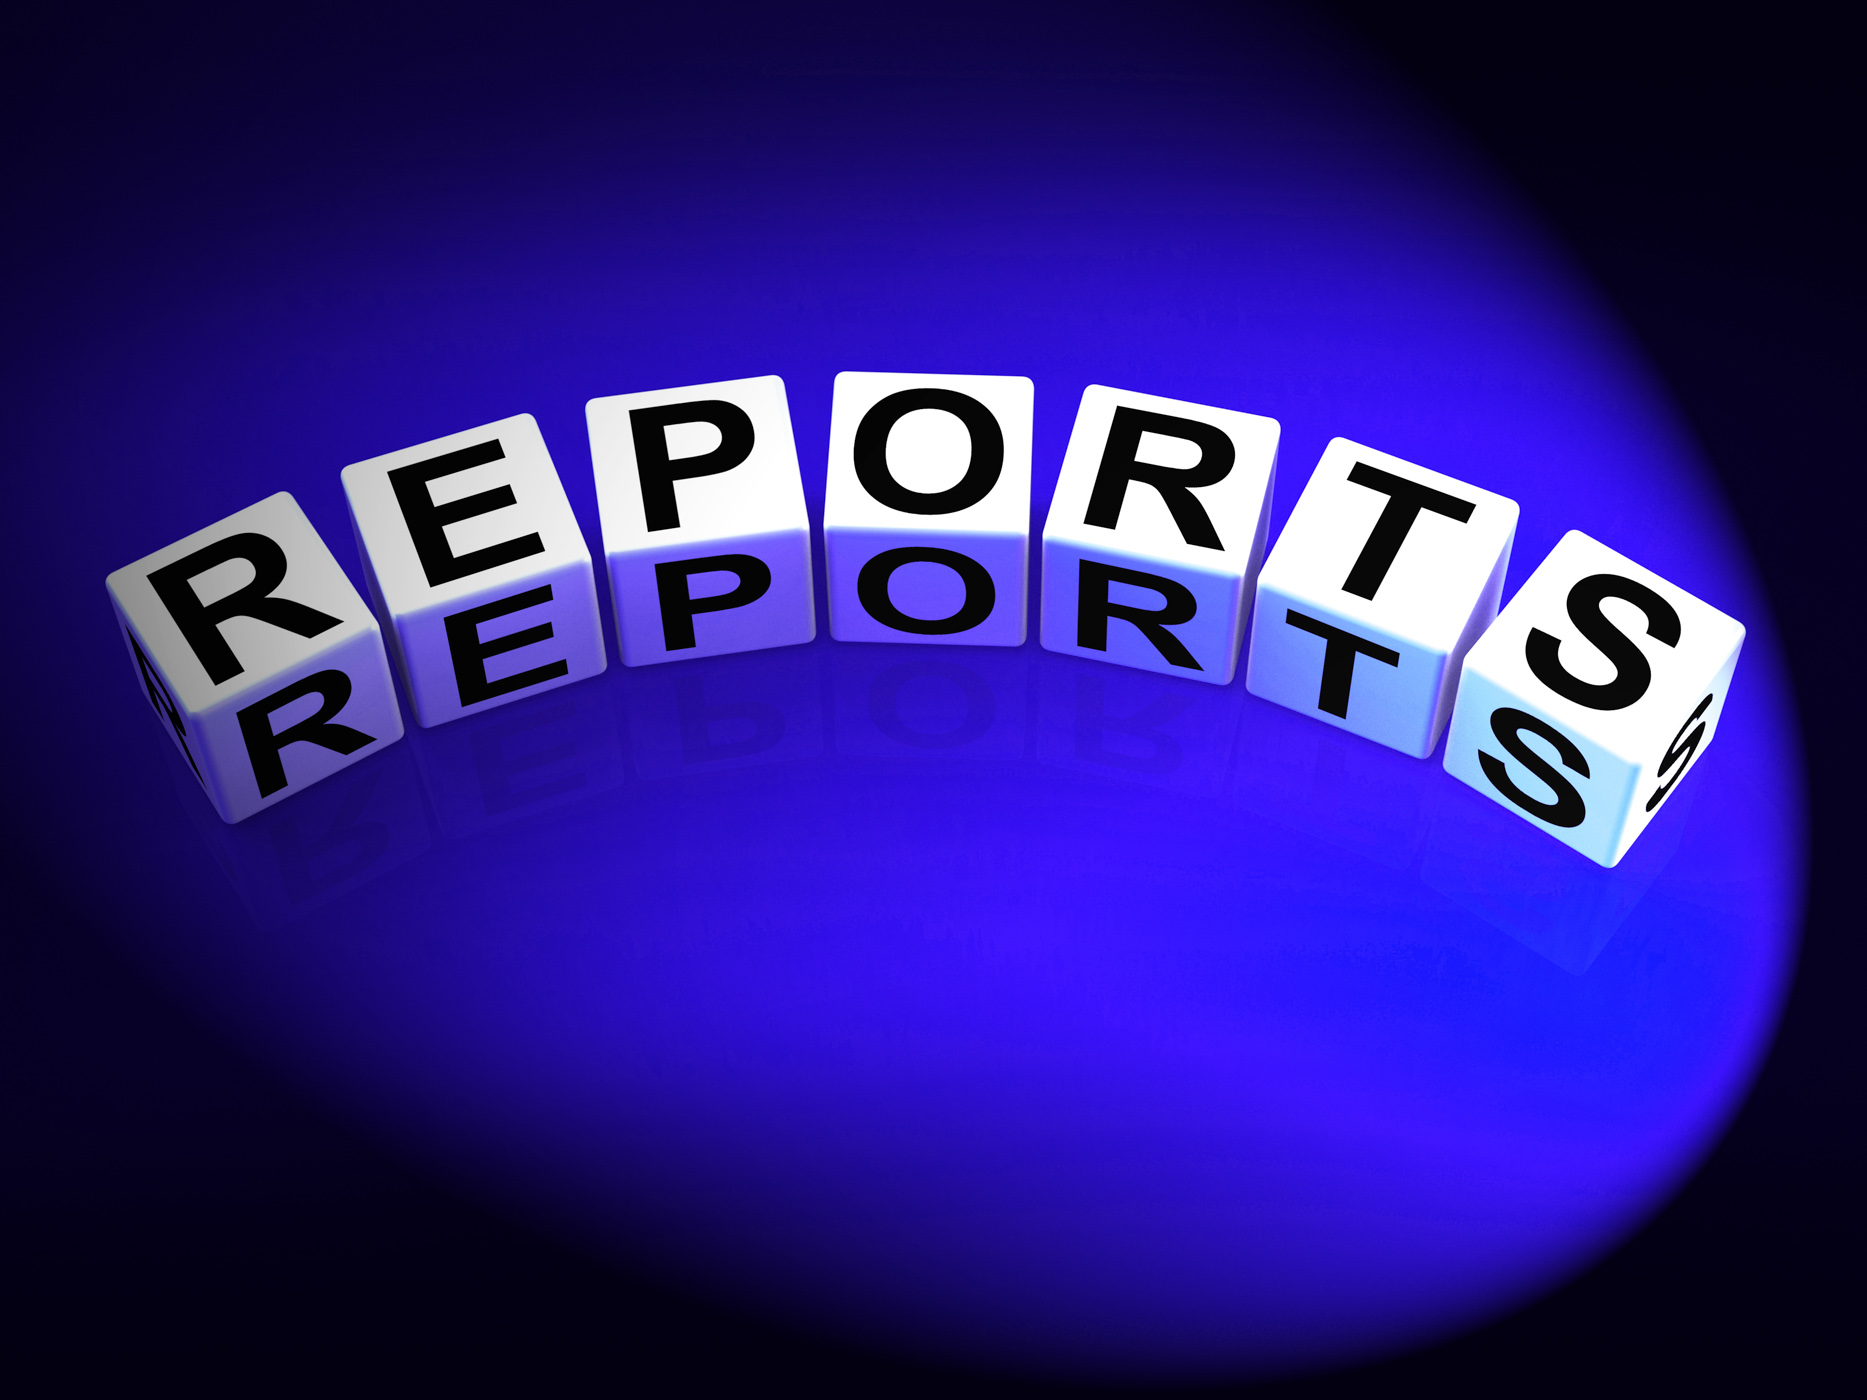 Reports dice represent reported information or articles photo